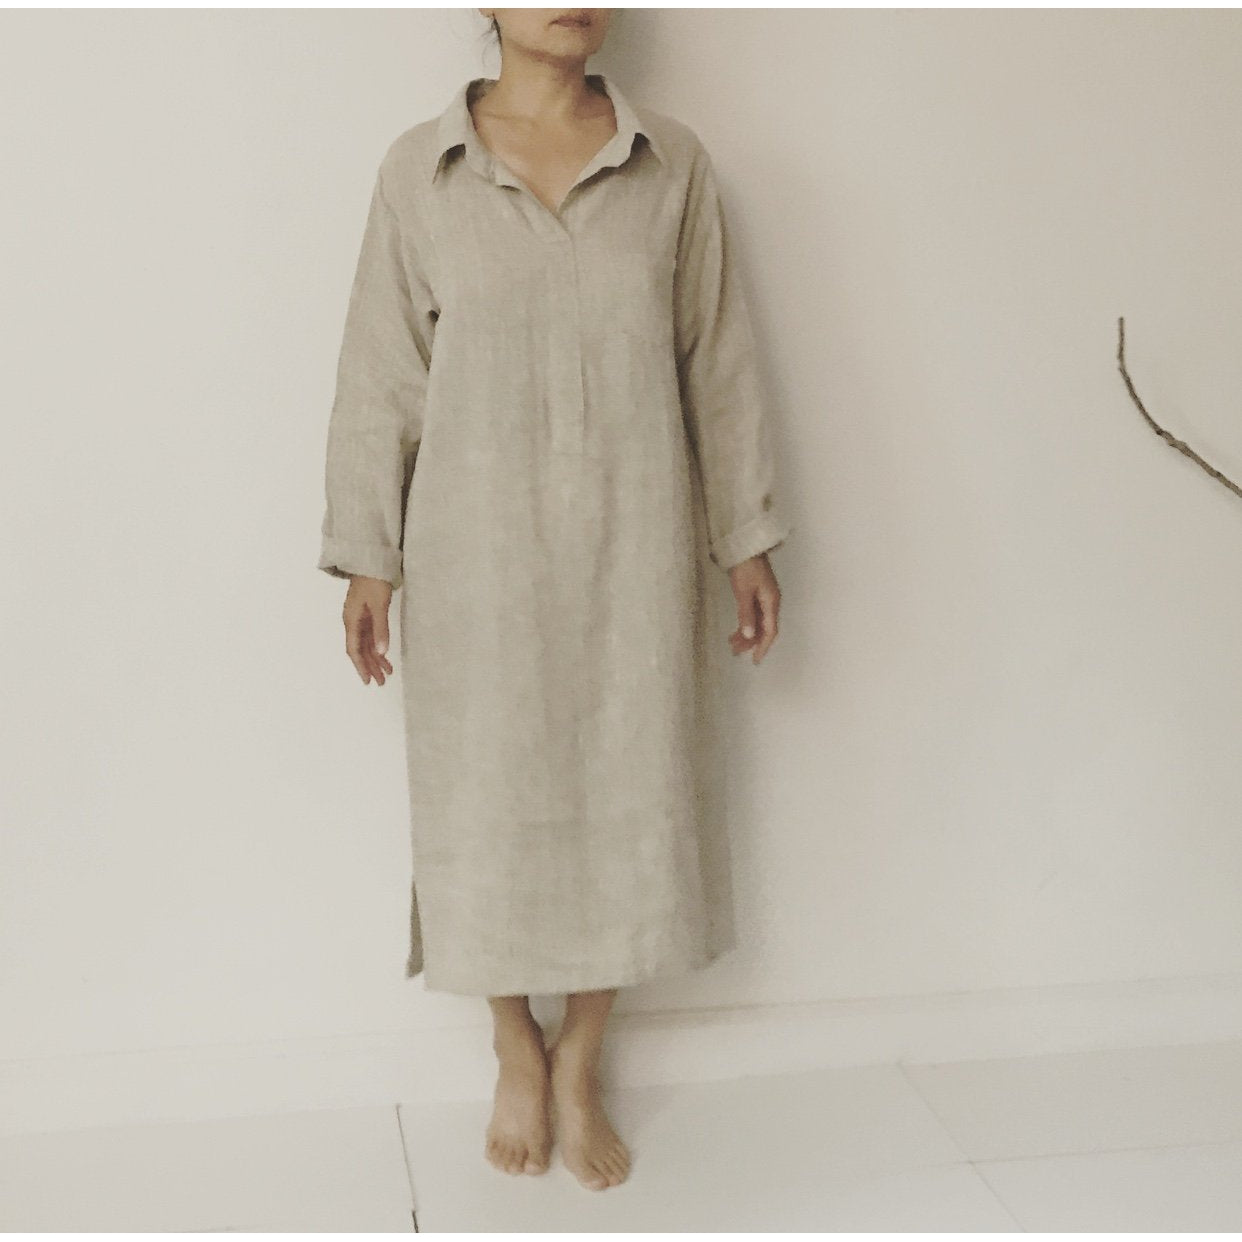 custom linen shirt collar dress